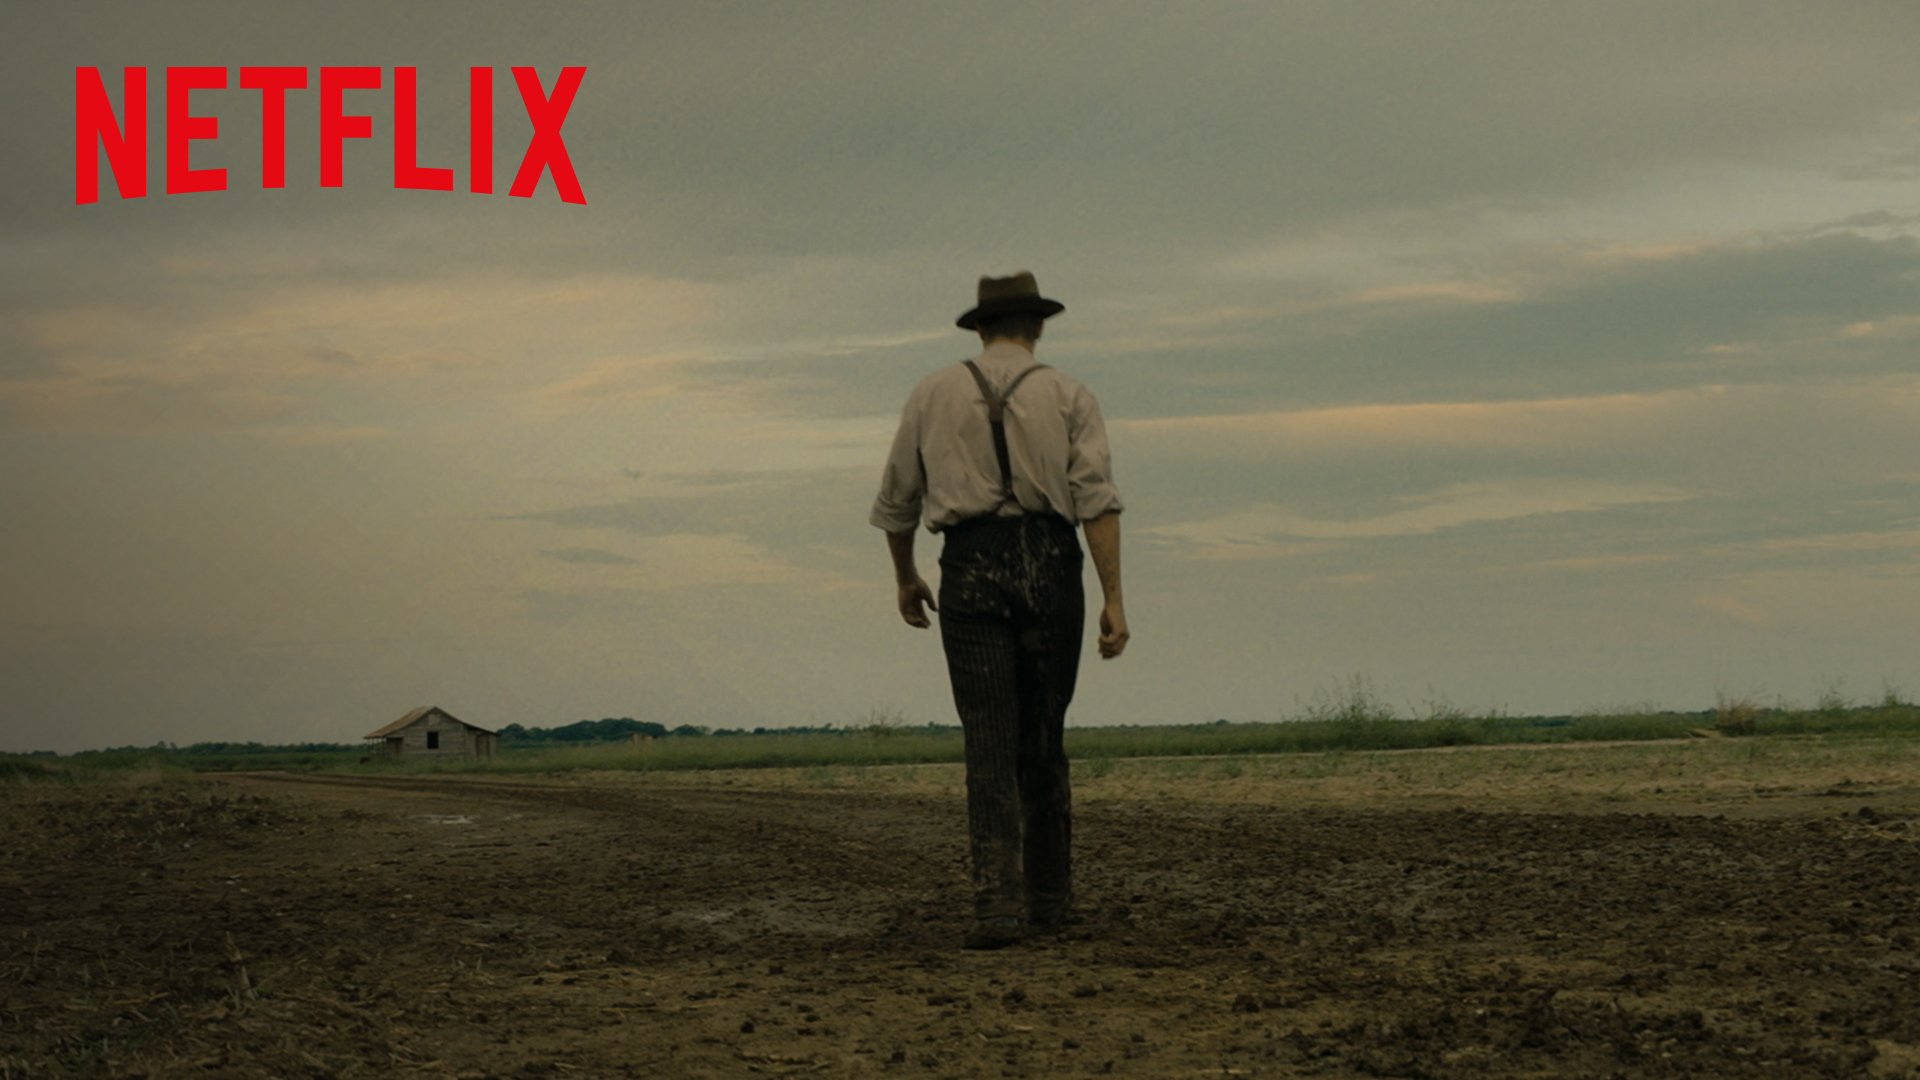 Out of the war, into the Delta. Mudbound, a Netflix film by Dee Rees, premieres November 17. https://t.co/kUyUBZ49Tf